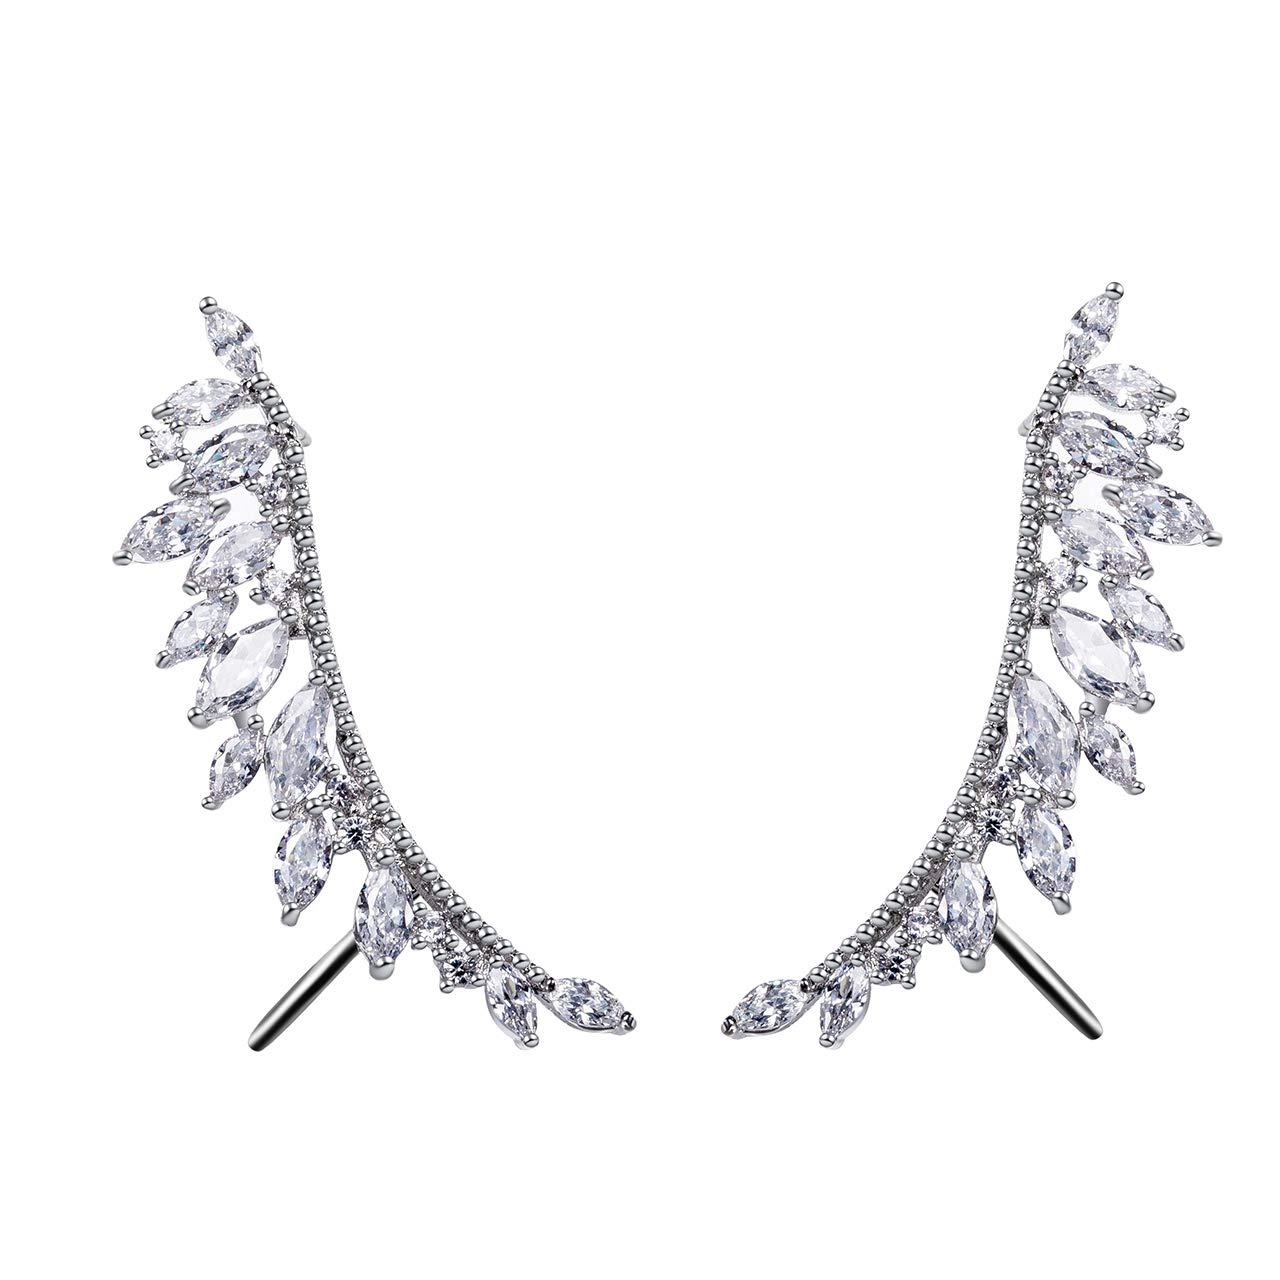 Flowetry Crystal Cuffs Wraps Earrings White Gold-plated Crystal Embellished Leaves Earrings